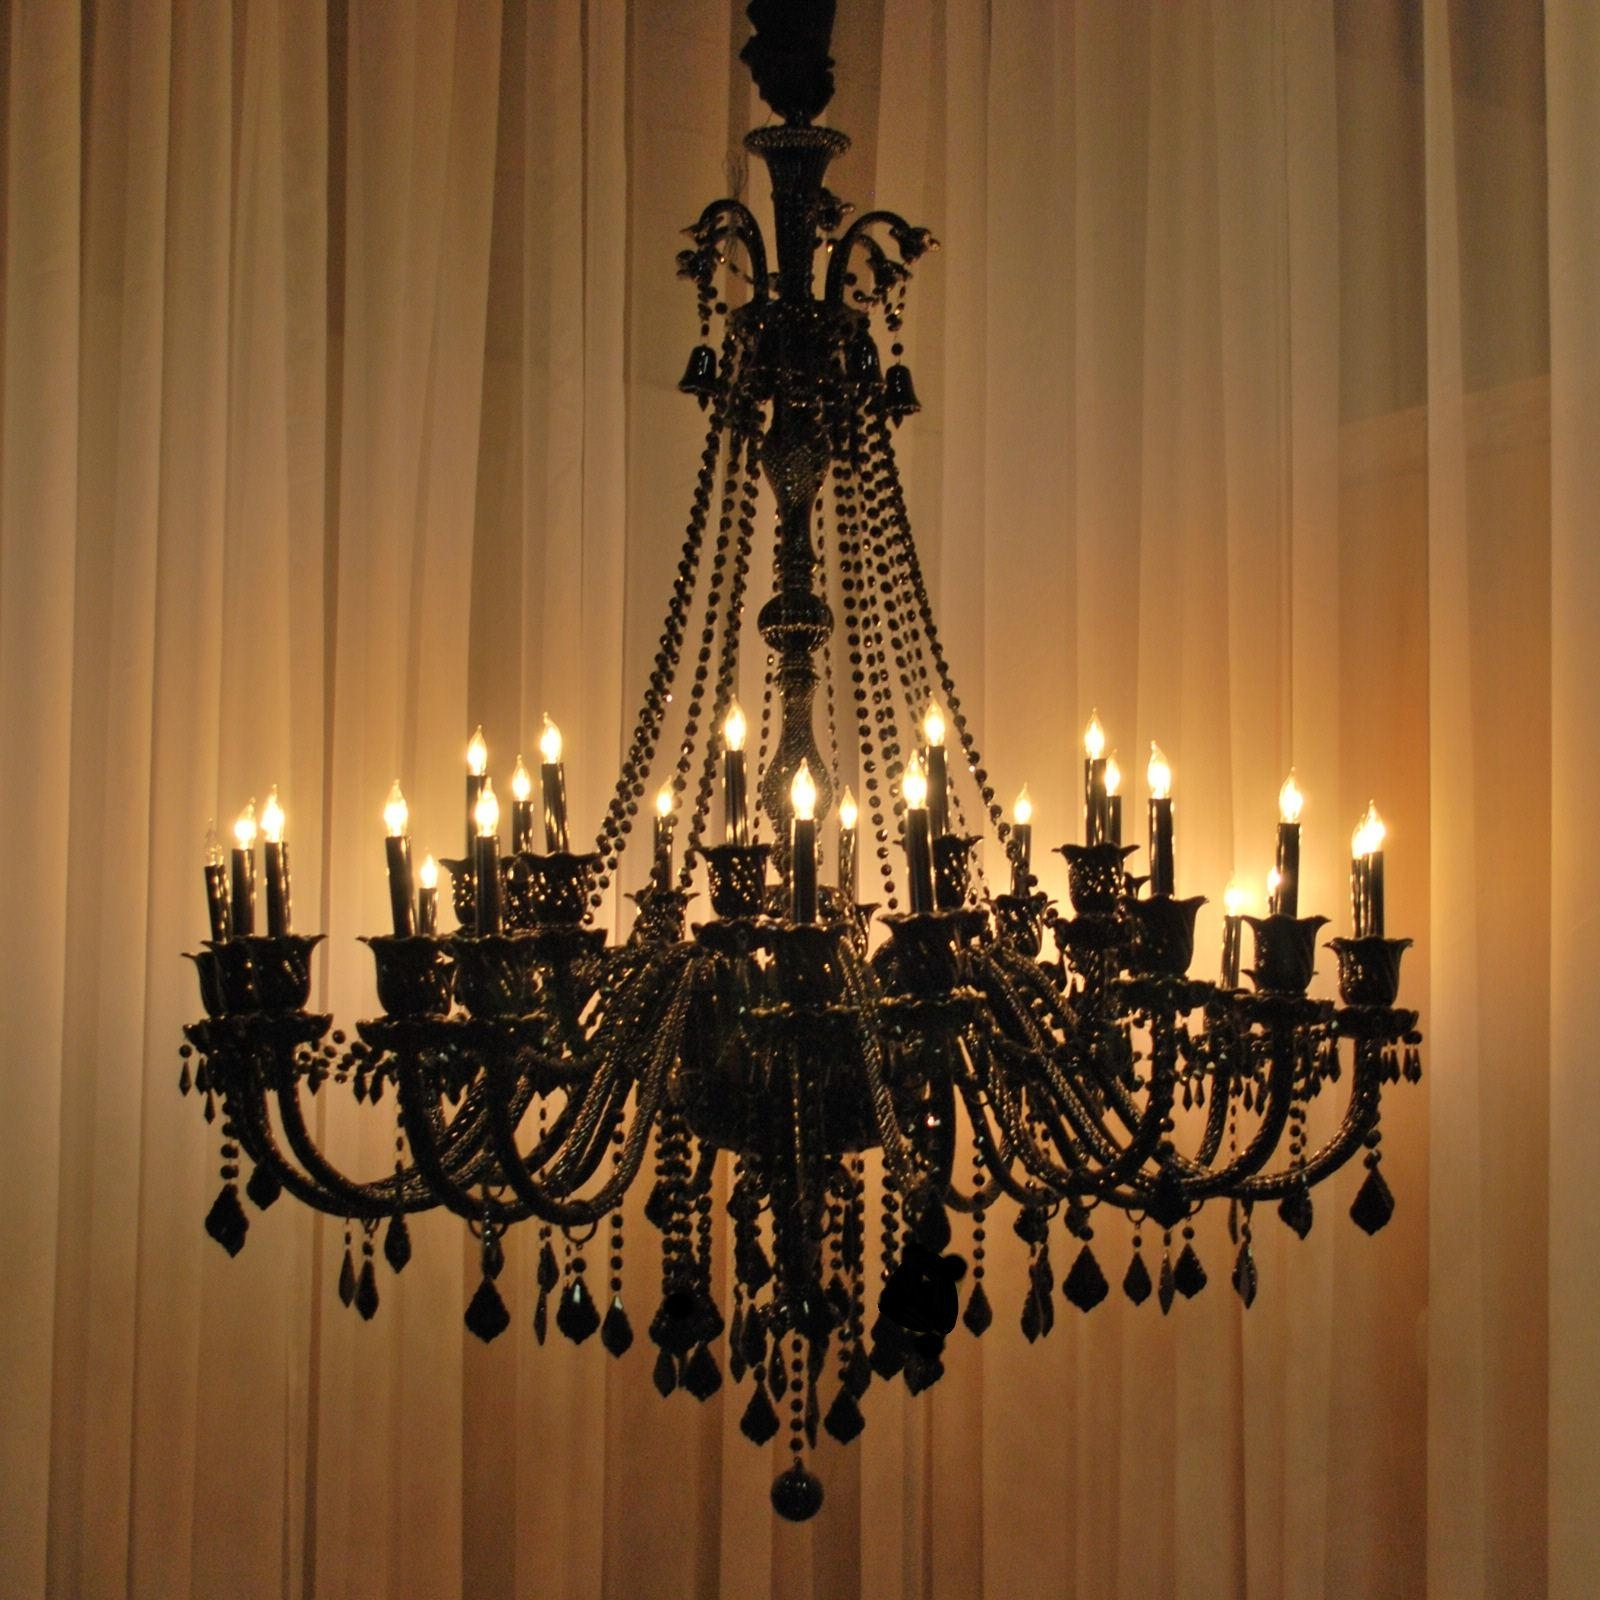 Extra Large Crystal Chandeliers In Best And Newest Chandelier, Chandeliers, Crystal Chandelier, Crystal Chandeliers (Gallery 13 of 15)